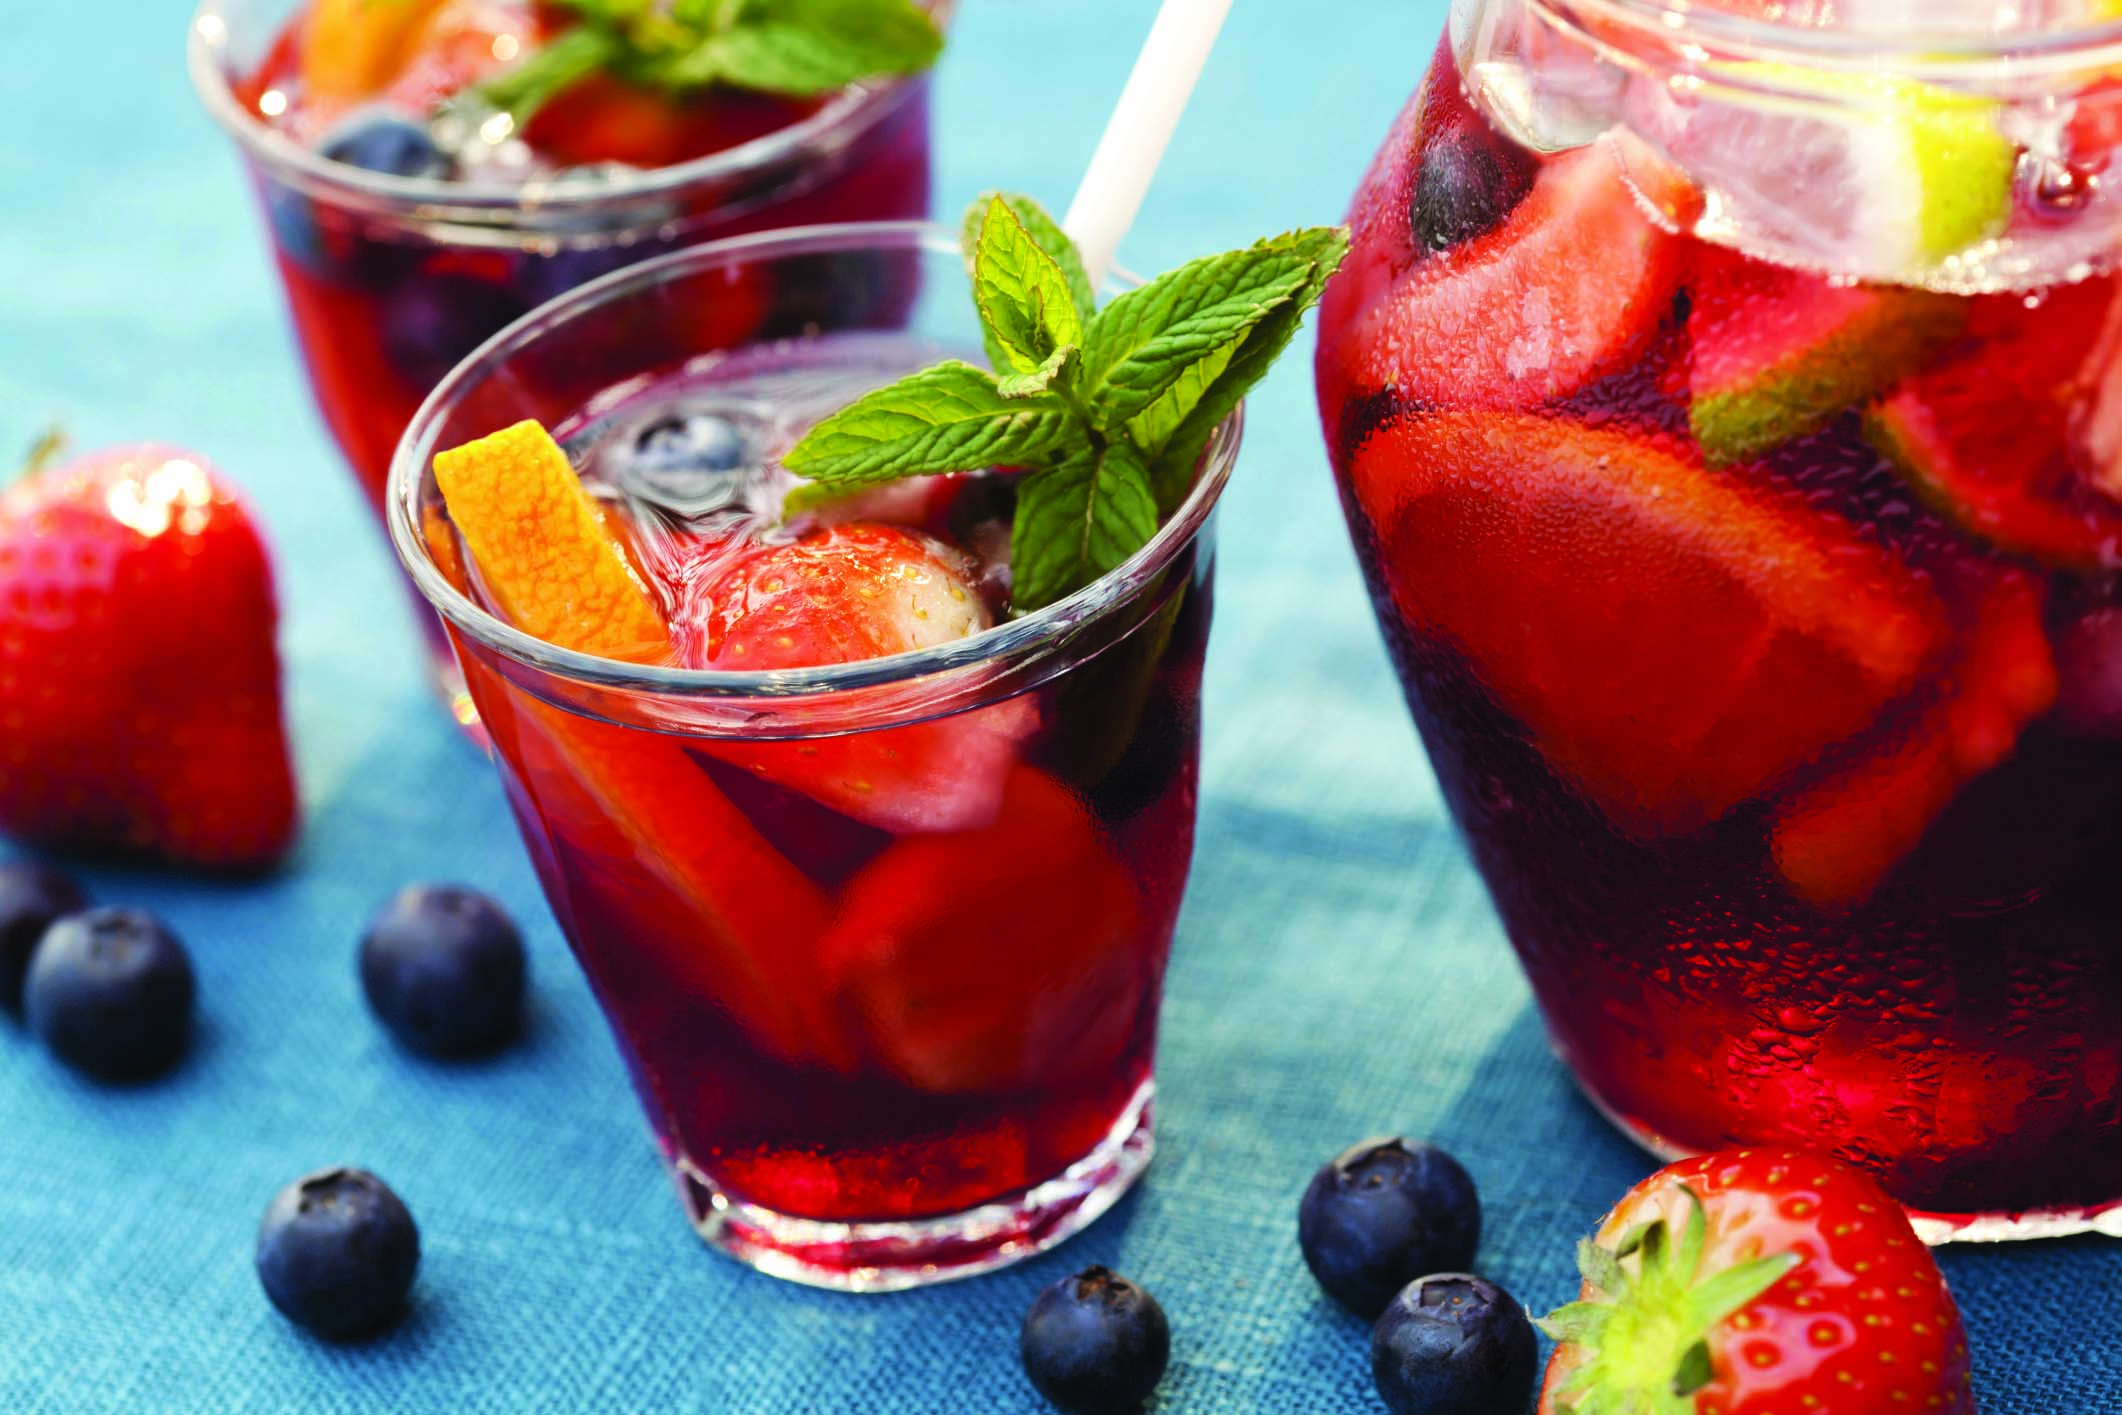 How To Make A Red Wine Sangria [VIDEO]